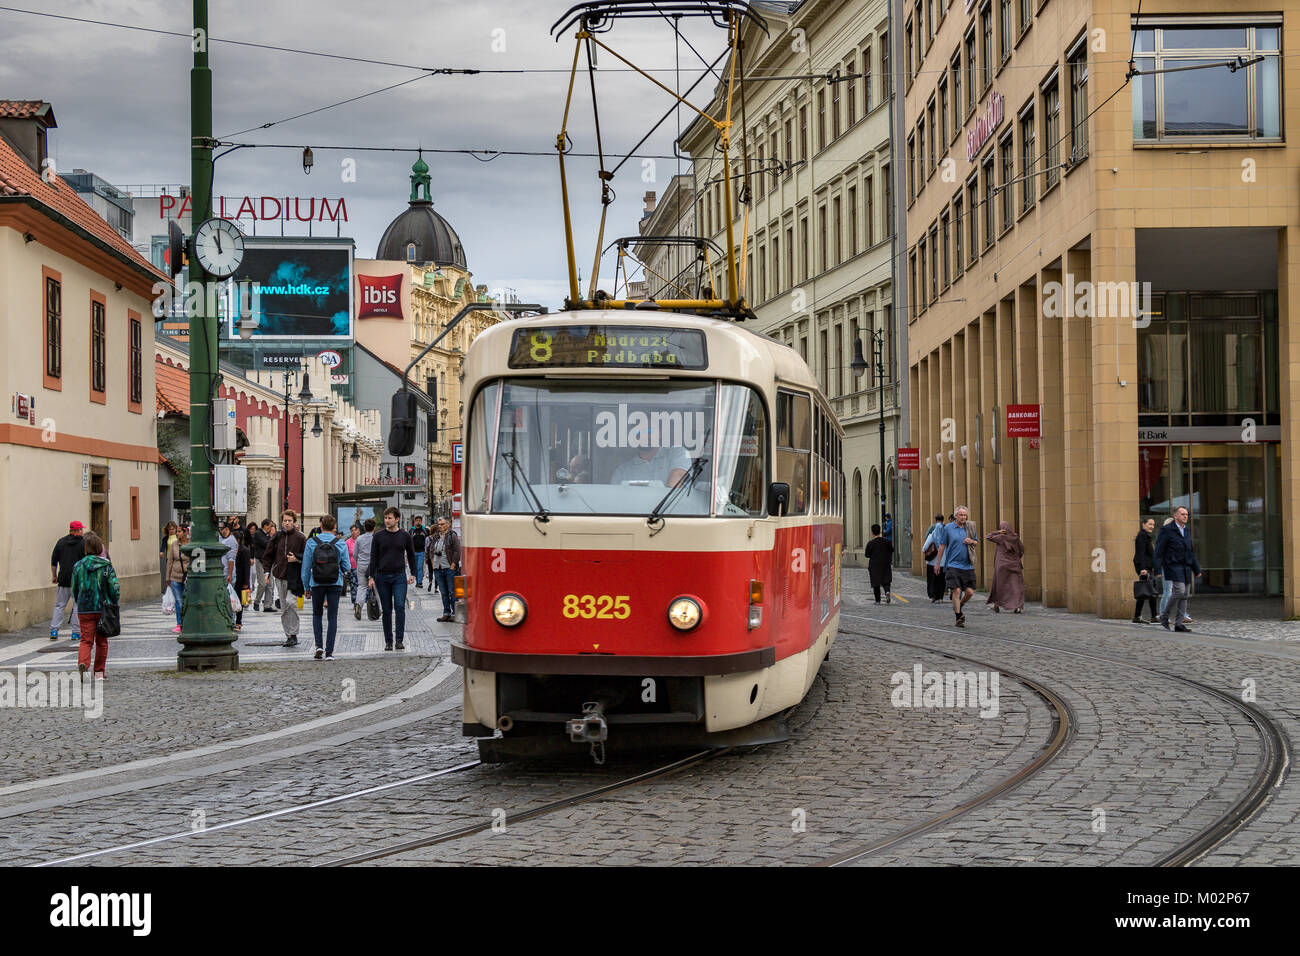 A Tatra T3R.P Tram makes it's way through the cobbled streets of Prague Old Town - Stock Image